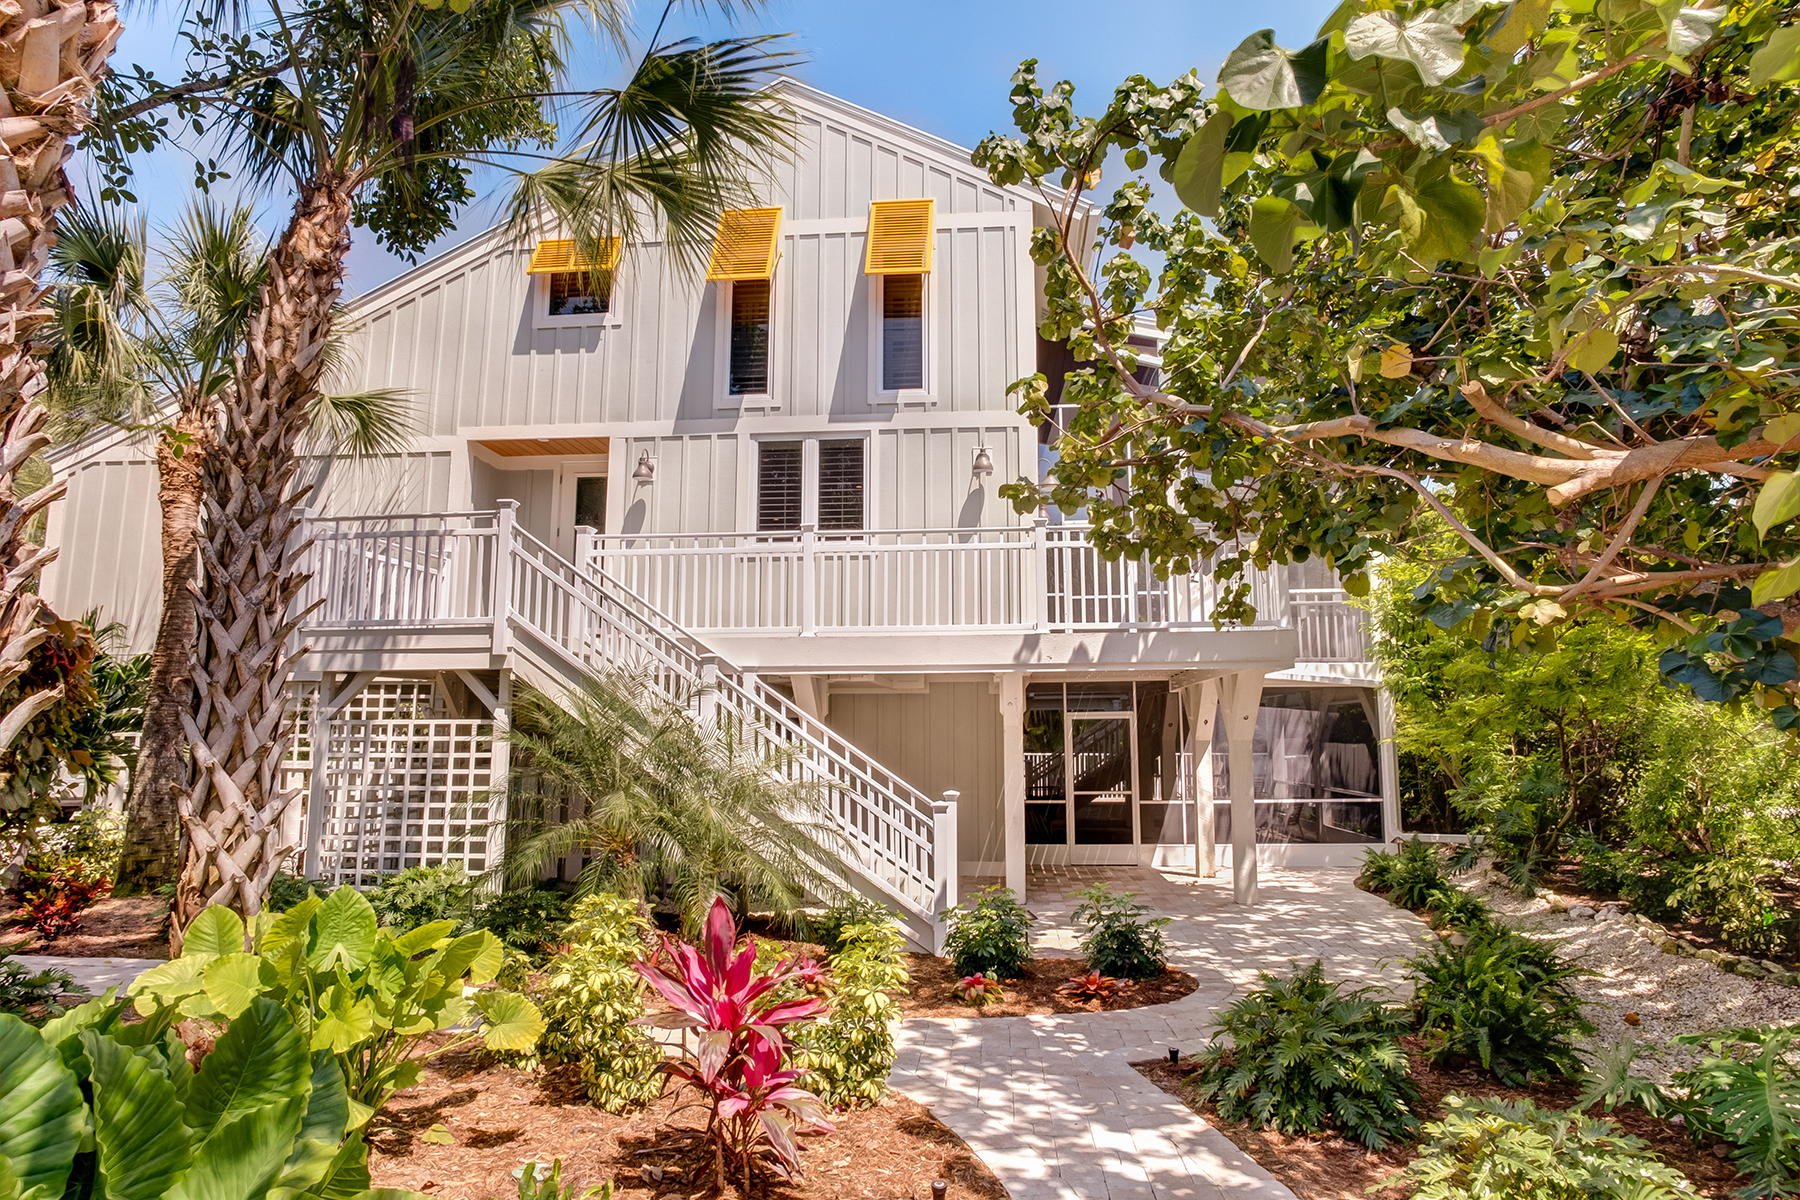 Single Family Home for Sale at Captiva 11411 Old Lodge Ln, Captiva, Florida 33924 United States